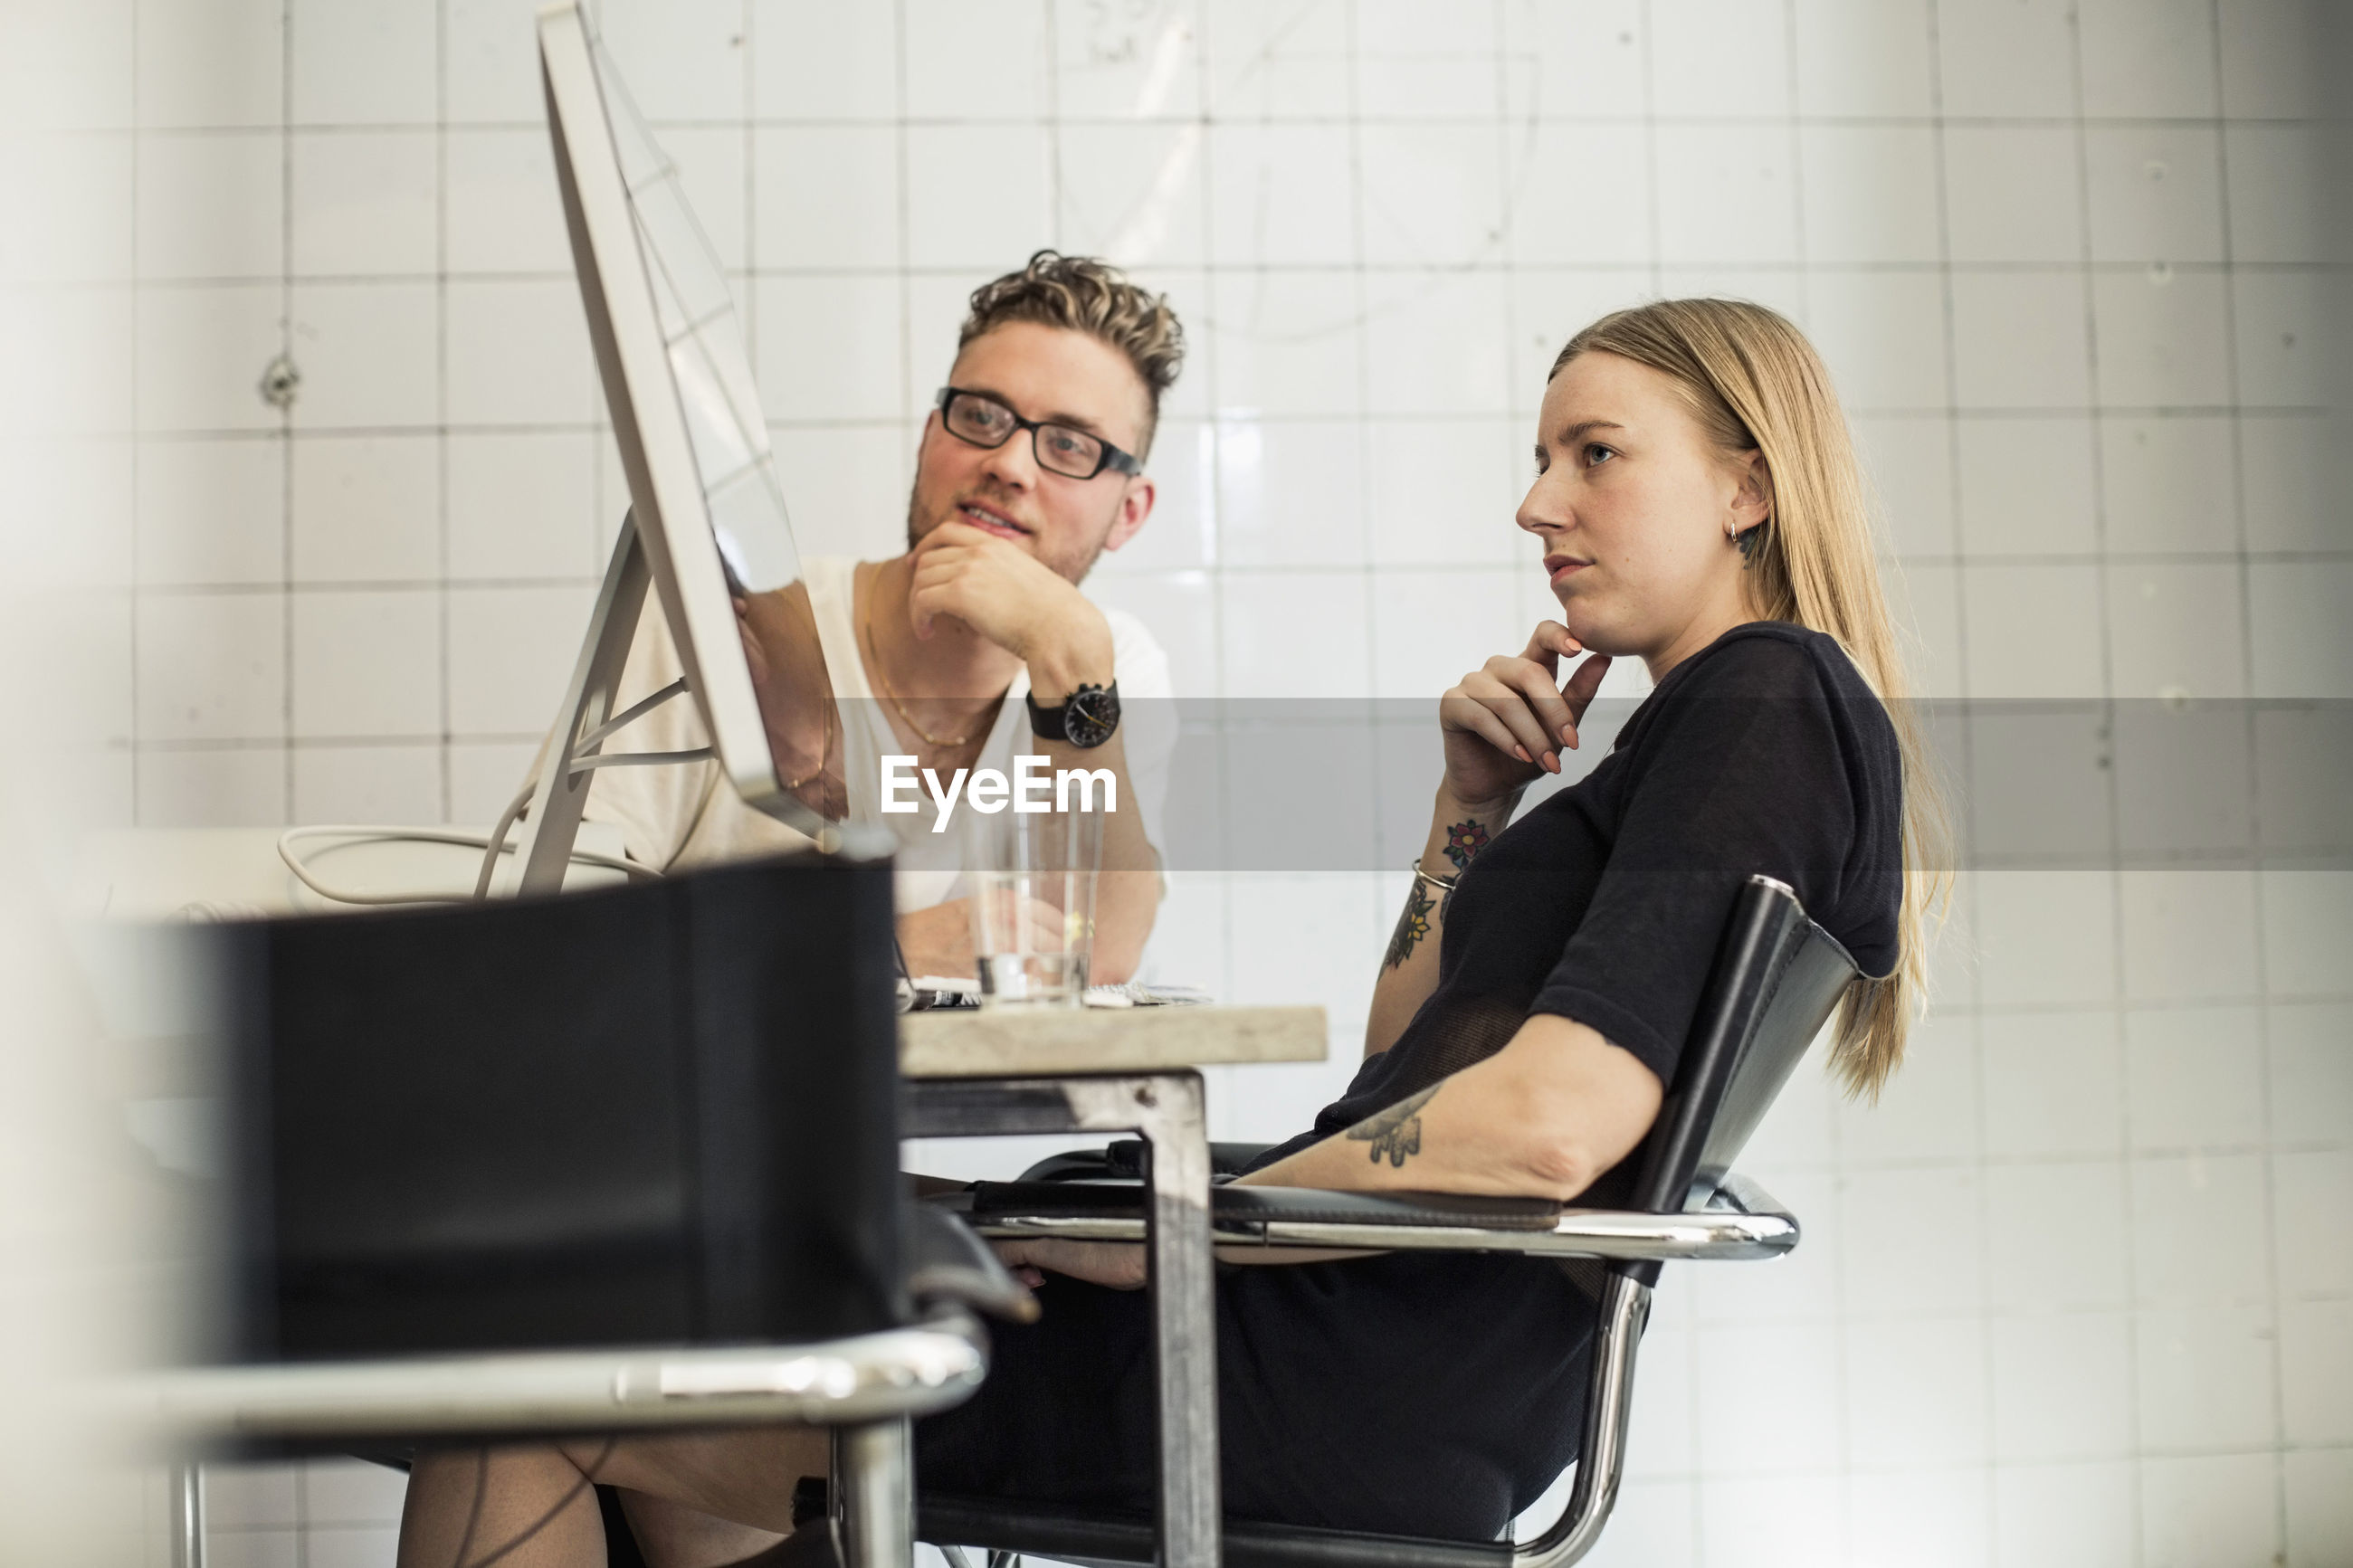 YOUNG WOMAN USING MOBILE PHONE IN OFFICE